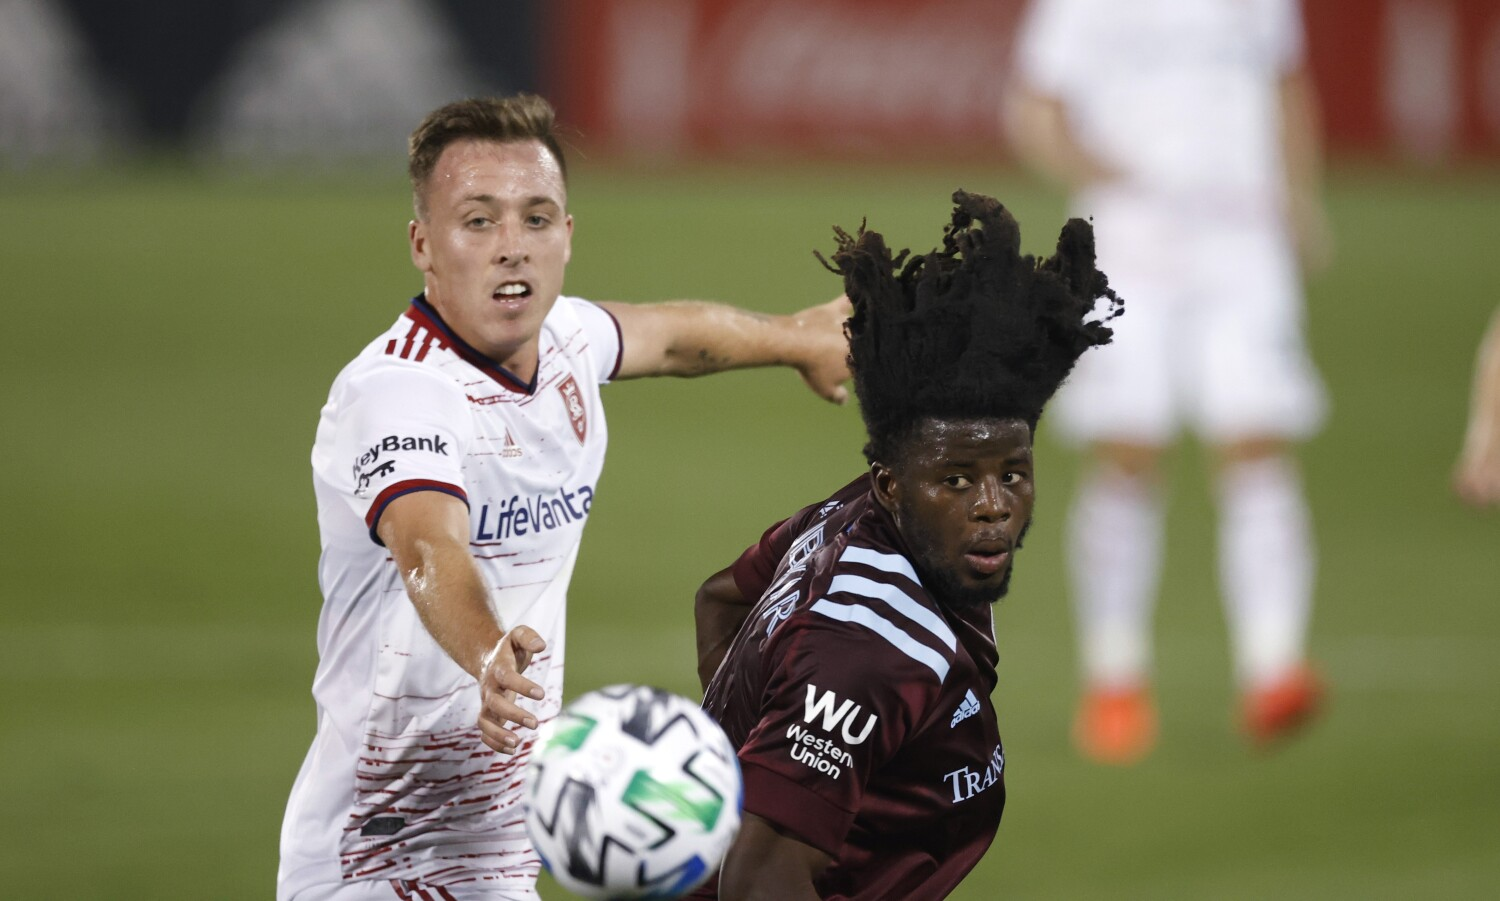 LAFC adds two versatile players, trading for Corey Baird and signing Kim Moon-hwan